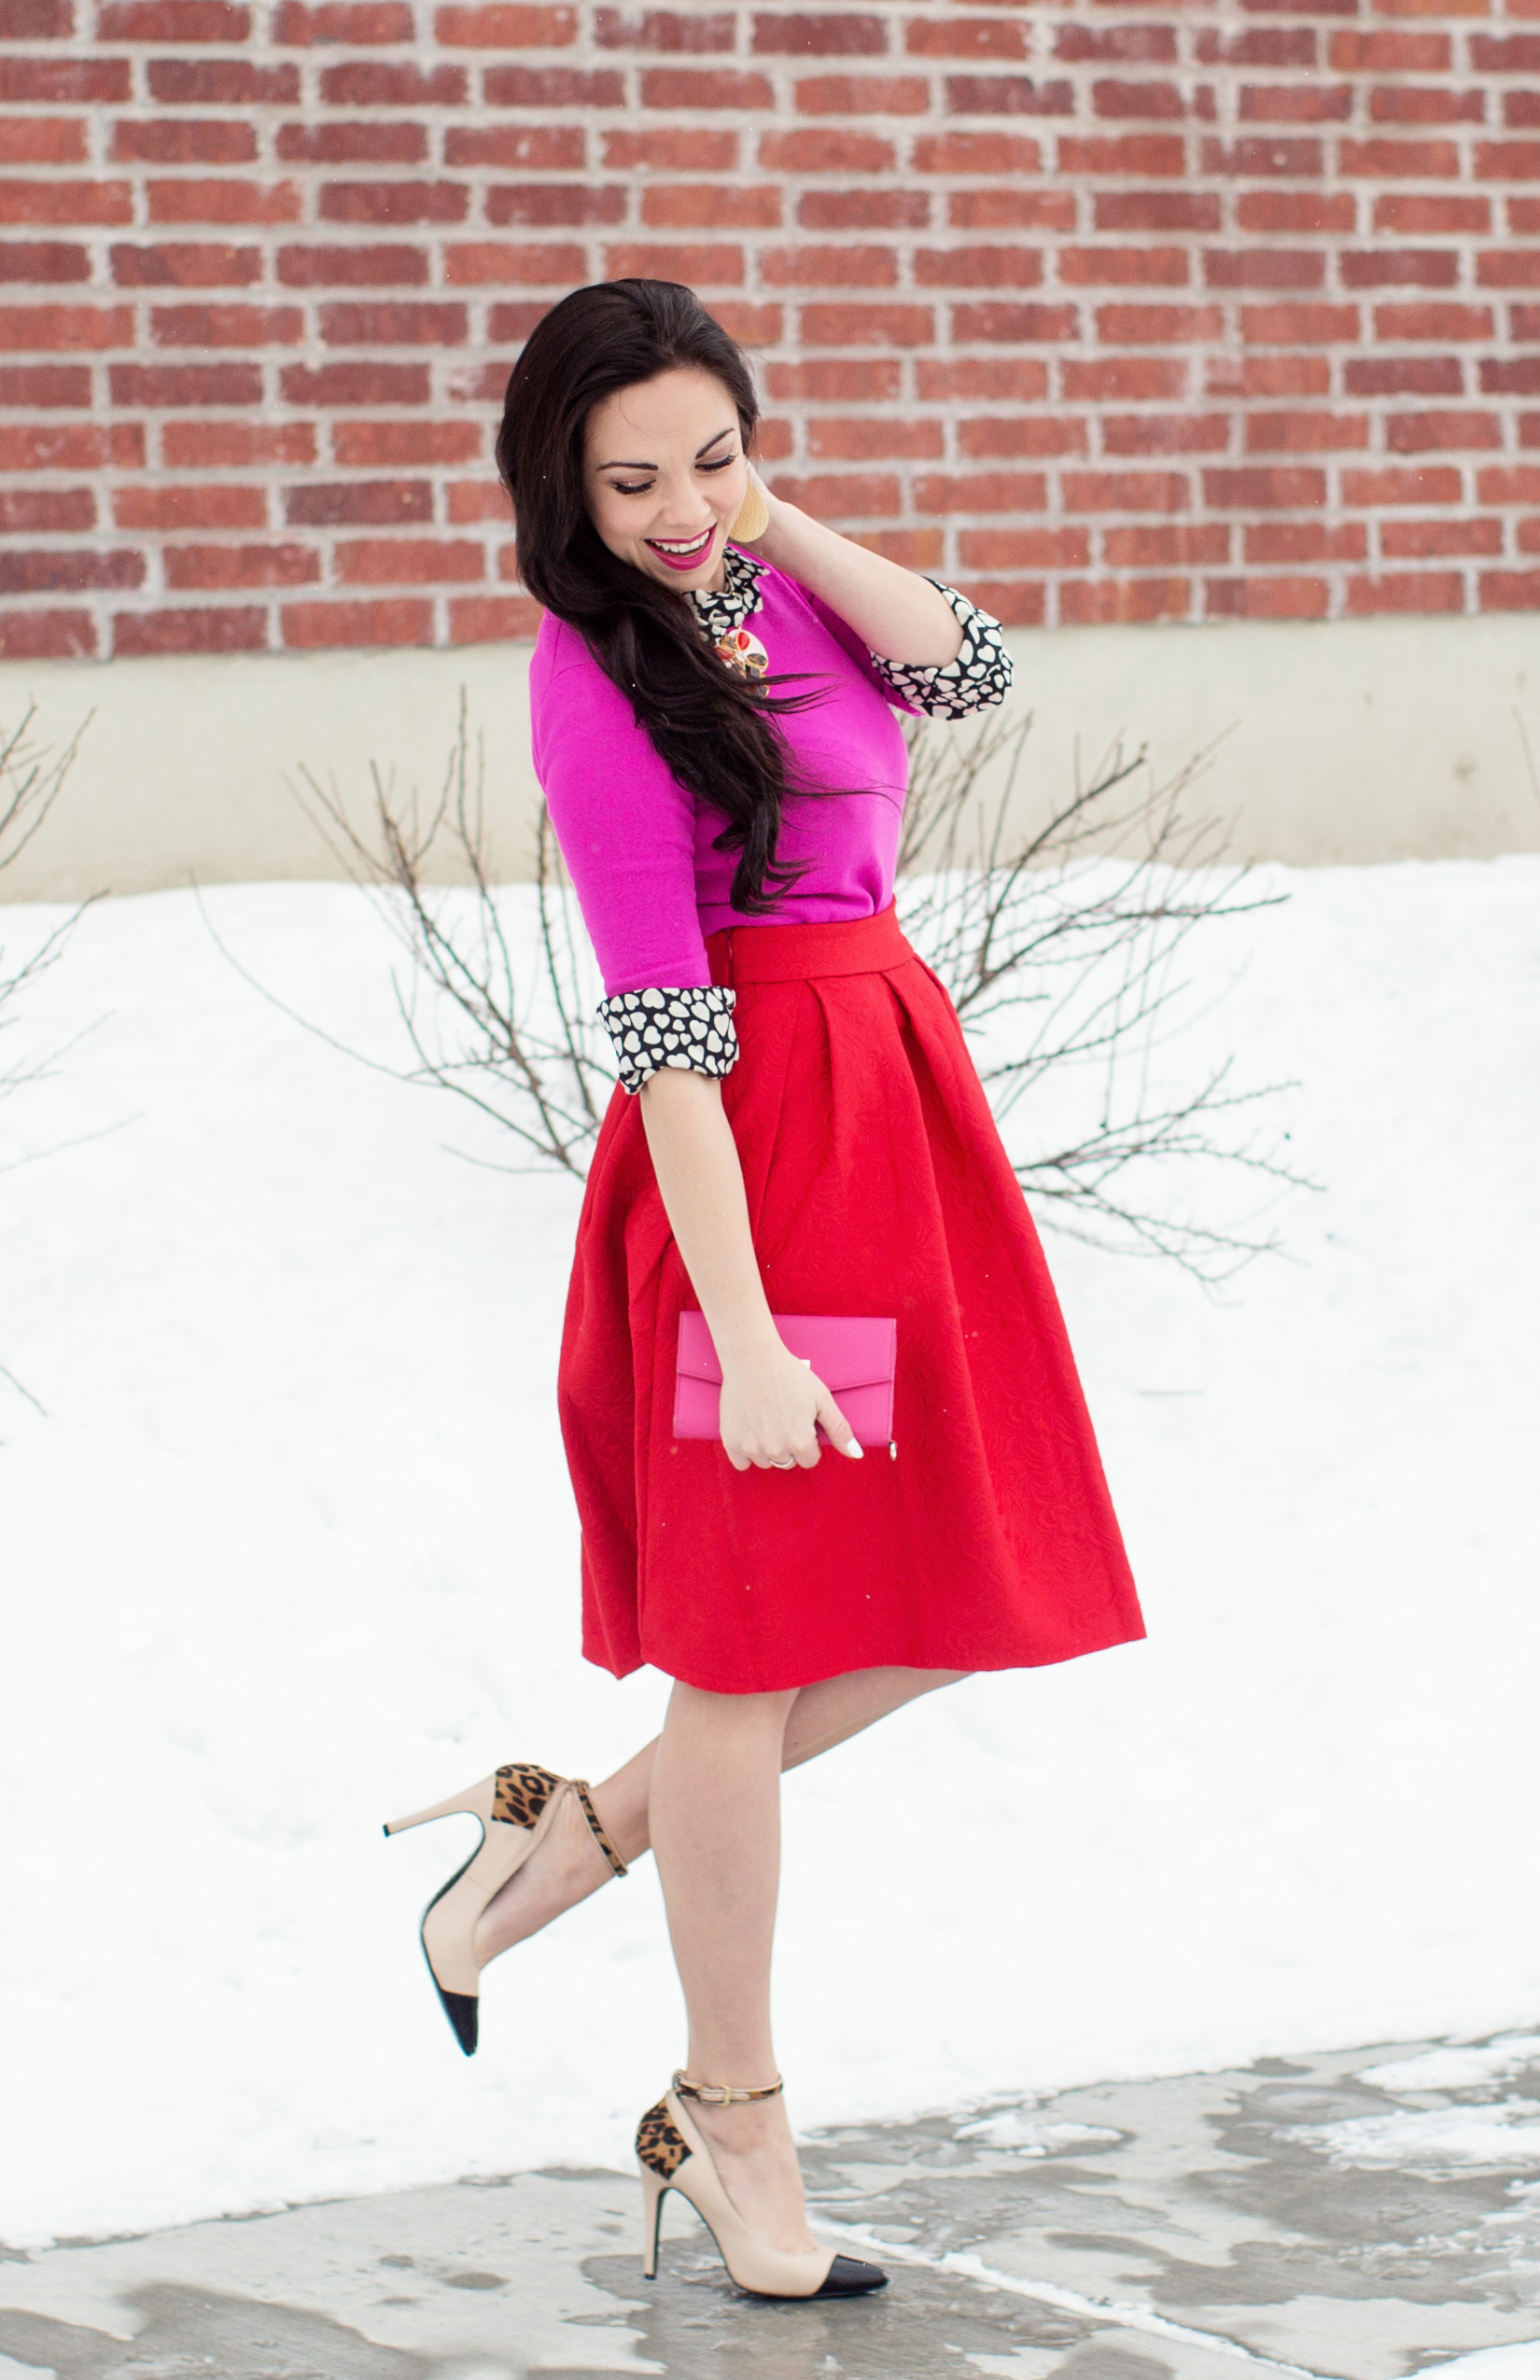 """Queen of Hearts"" Kate Spade Inspired Modest Valentine's Day Look"